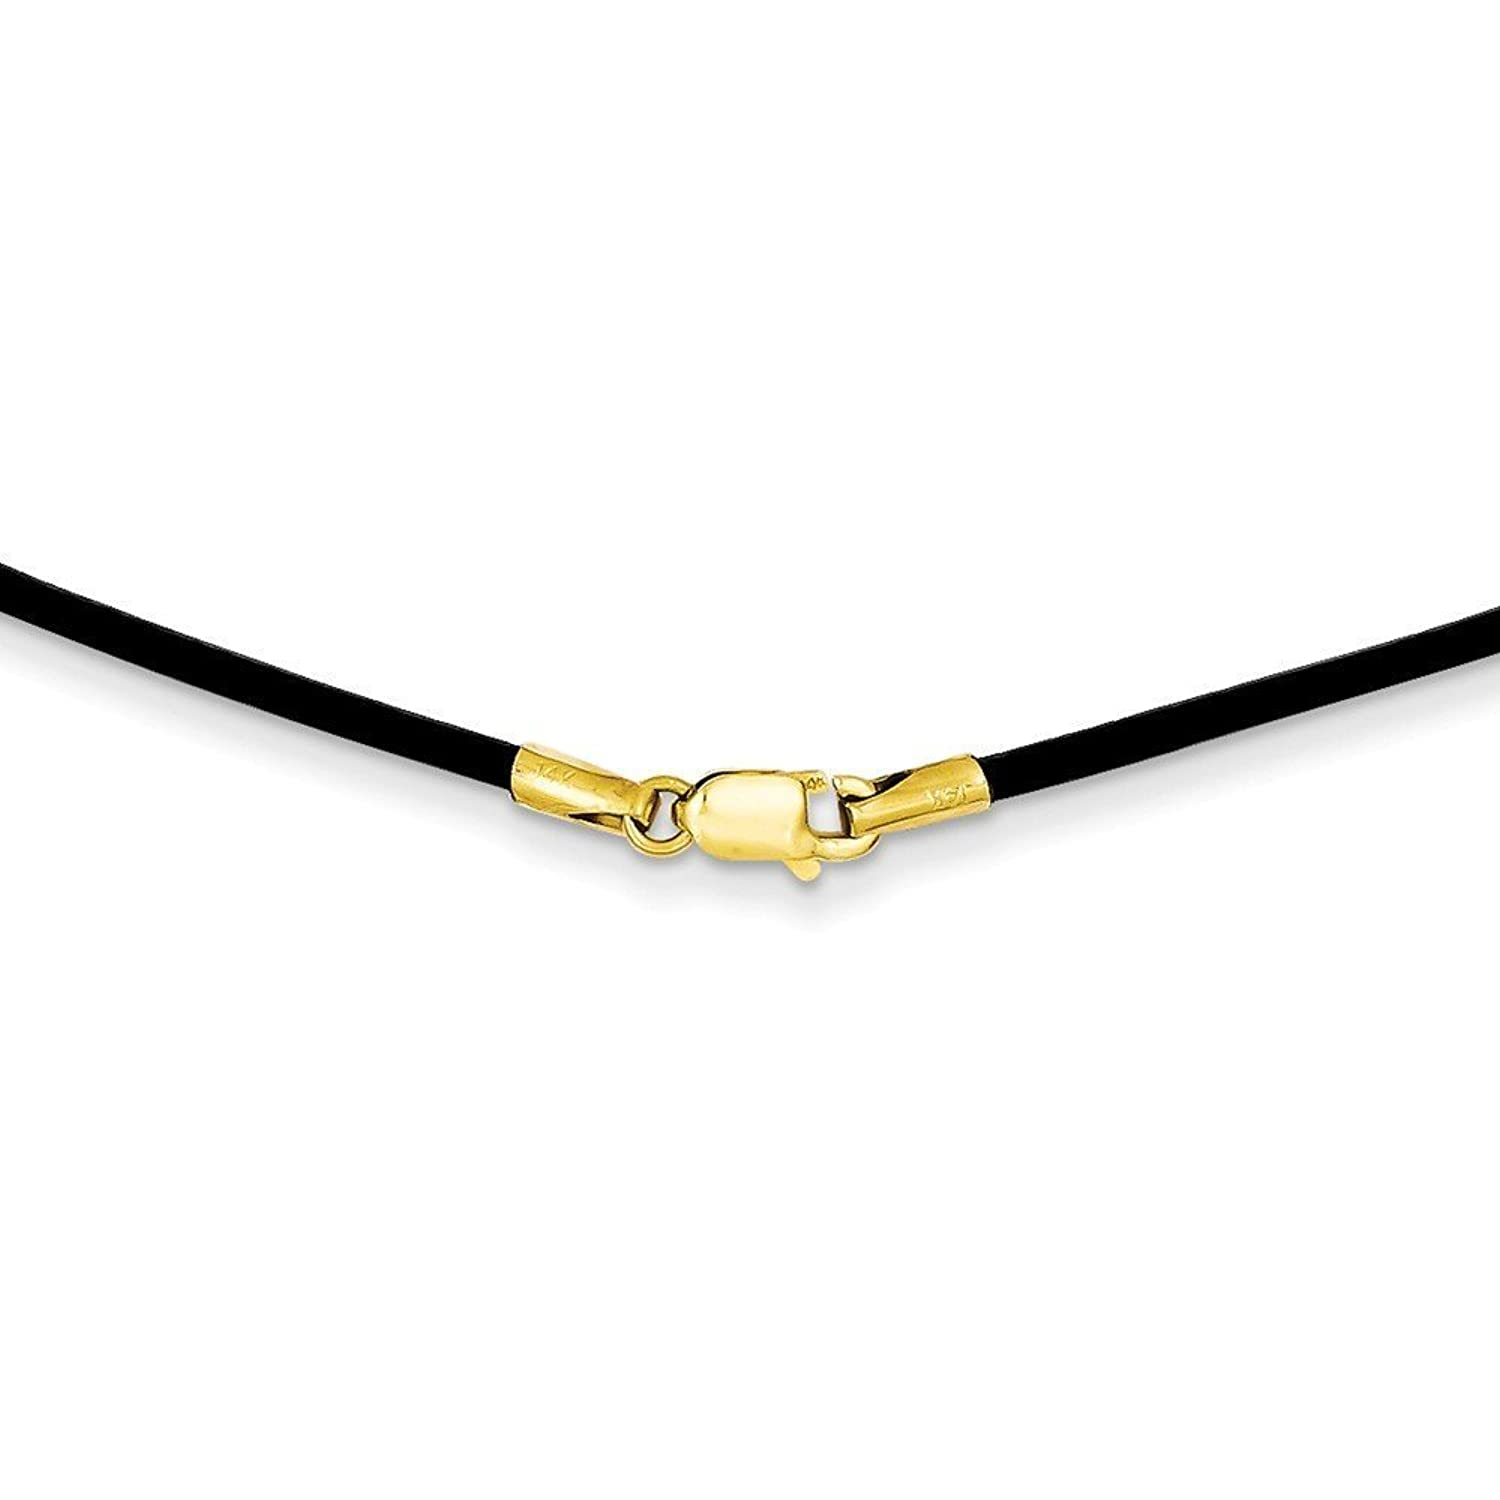 14K Gold 1.6mm 16in Black Leather Cord Necklace 16 Inches